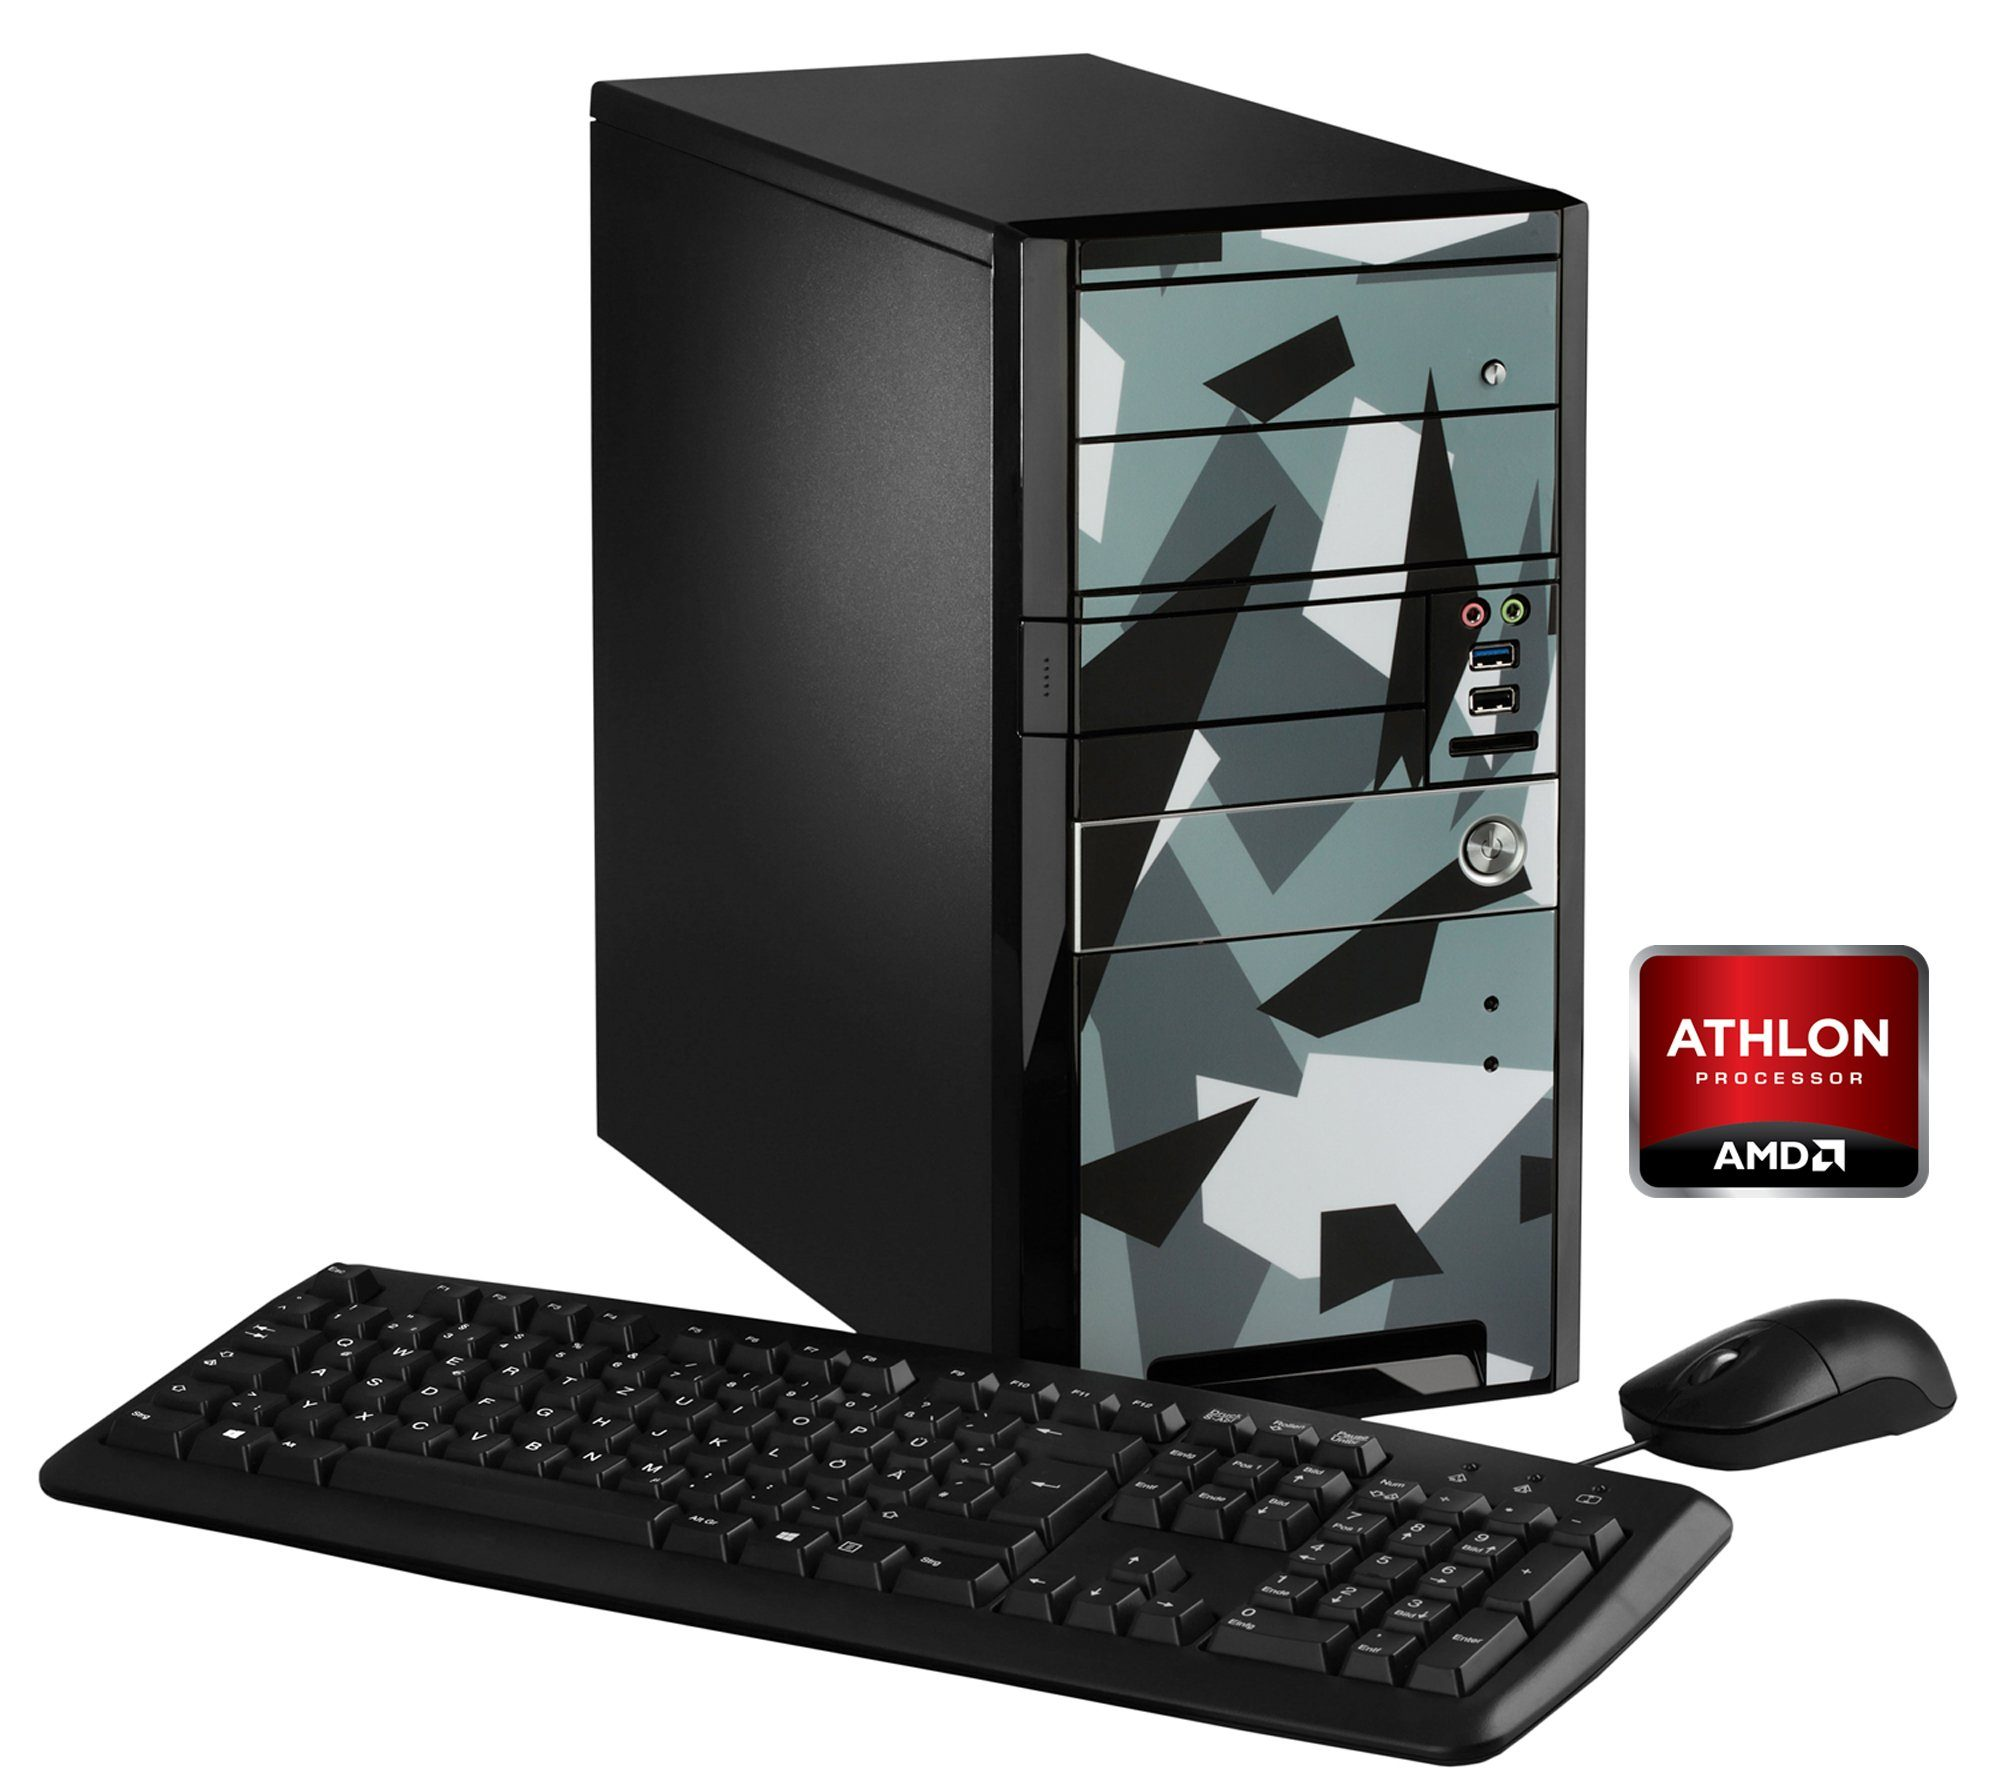 Hyrican PC AMD Athlon X4 880K, 16GB, GeForce® GTX 950 2GB »Limited Edition - Ice 5137«